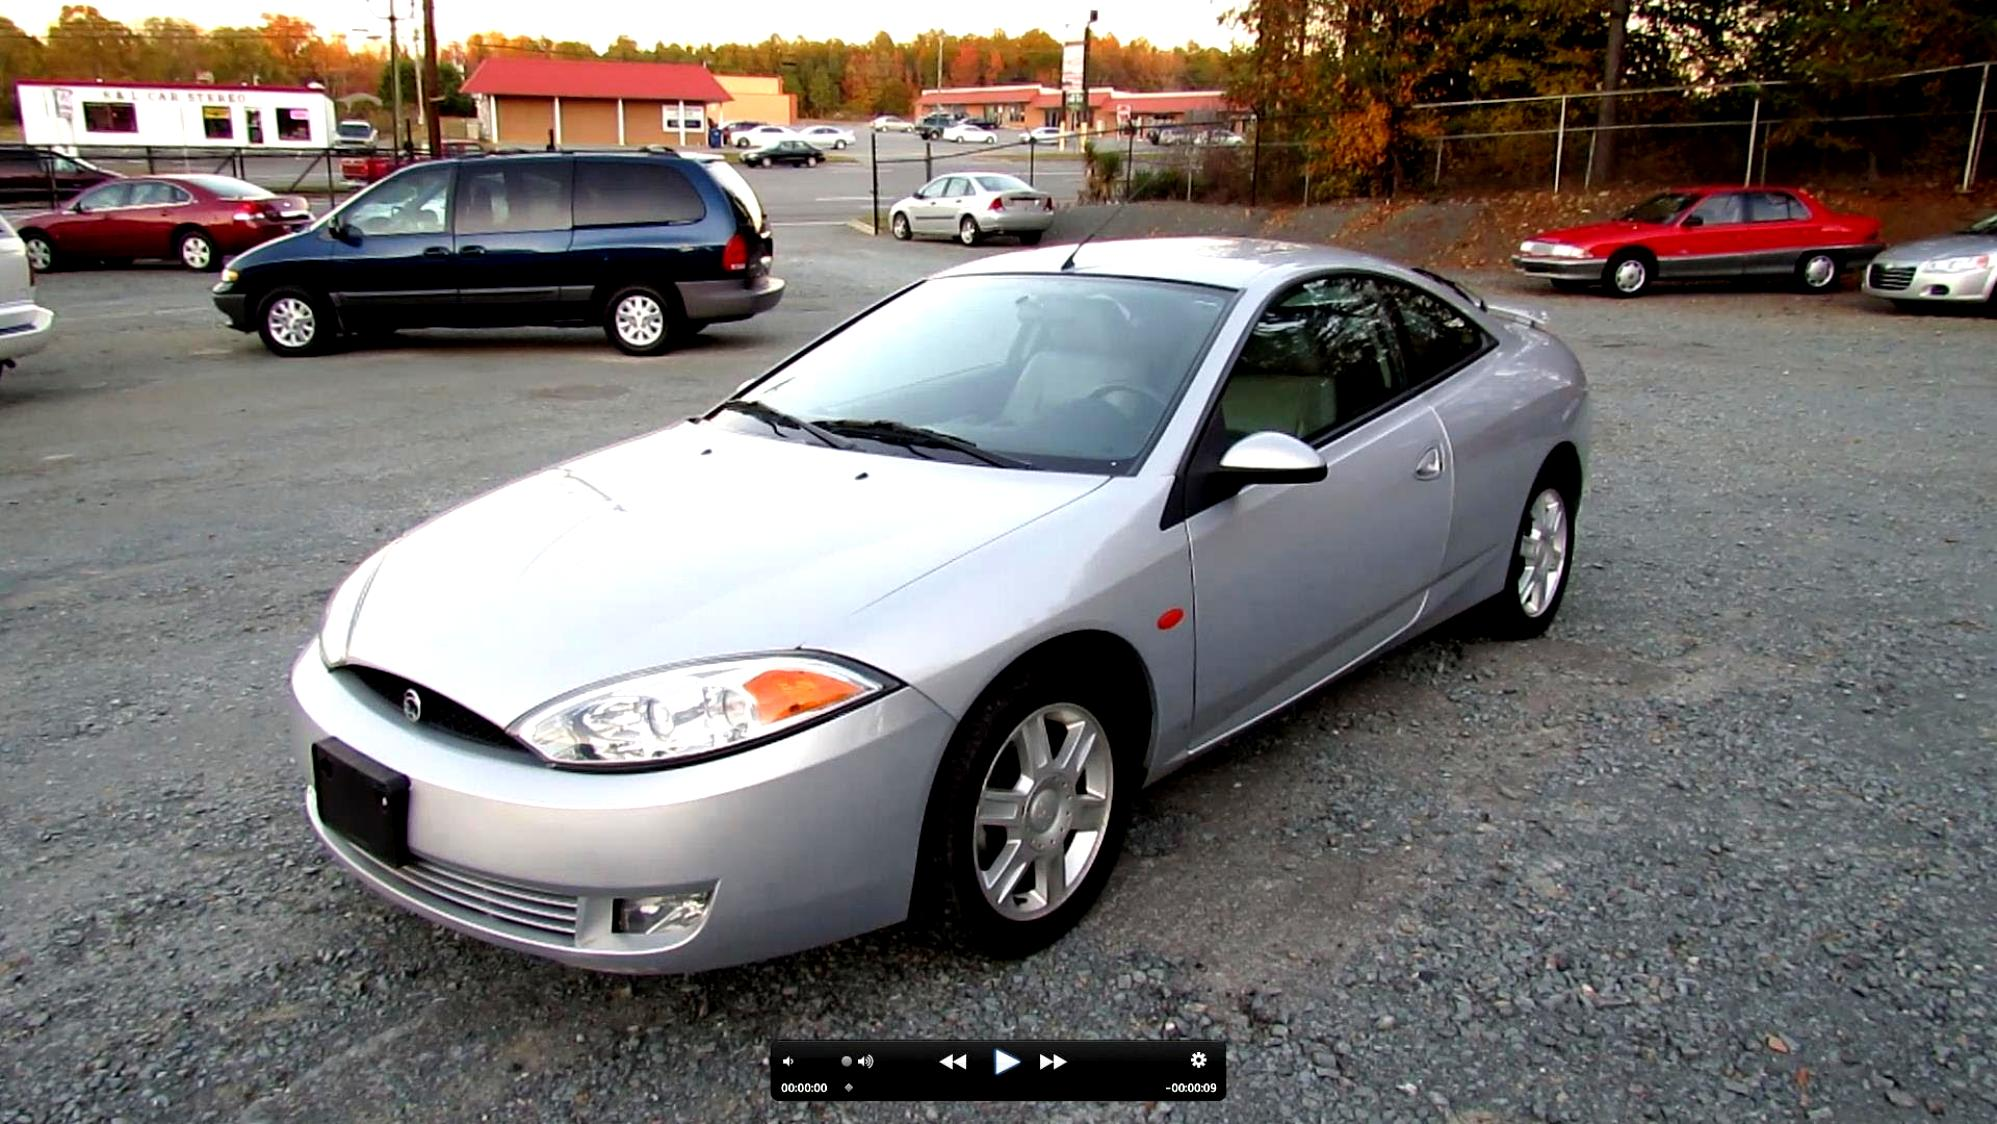 Ford Cougar 1998 #45